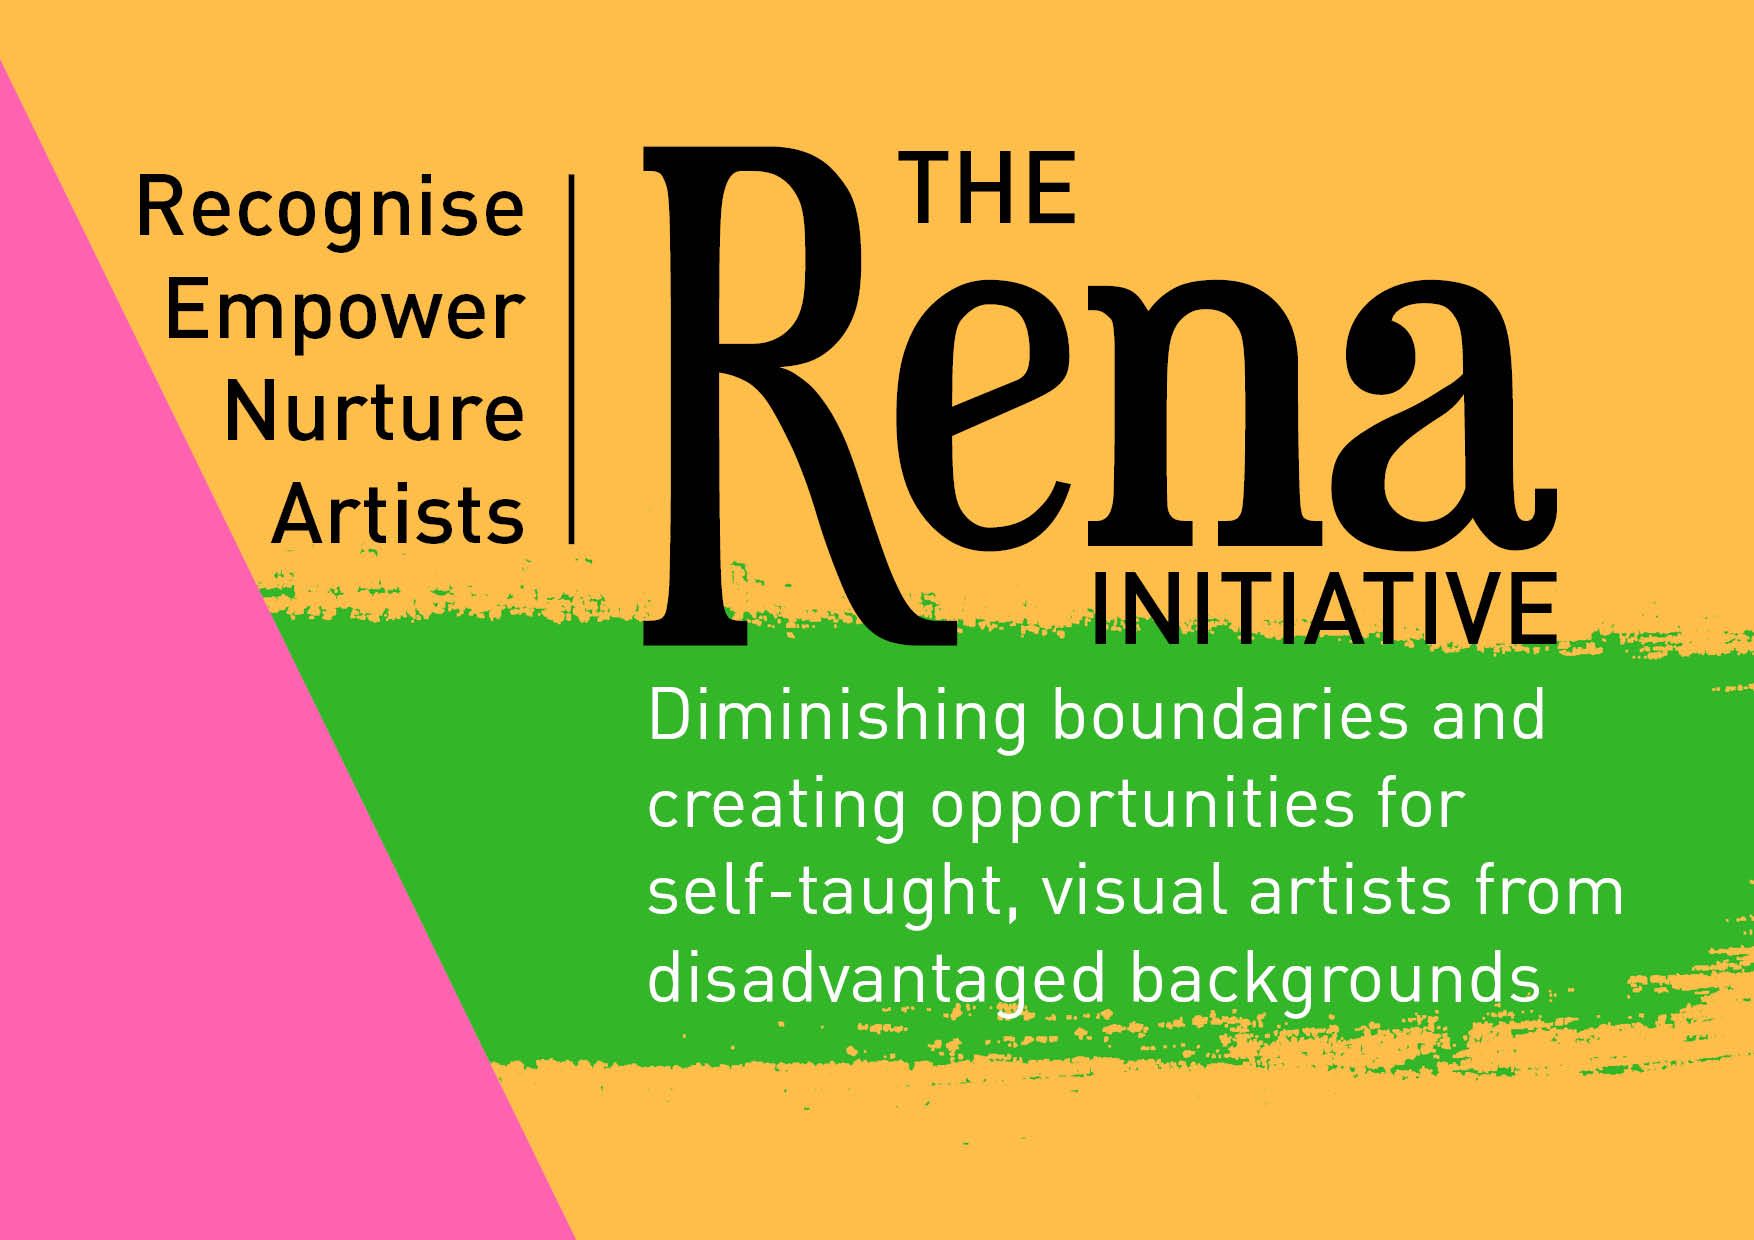 The RENA Initiative